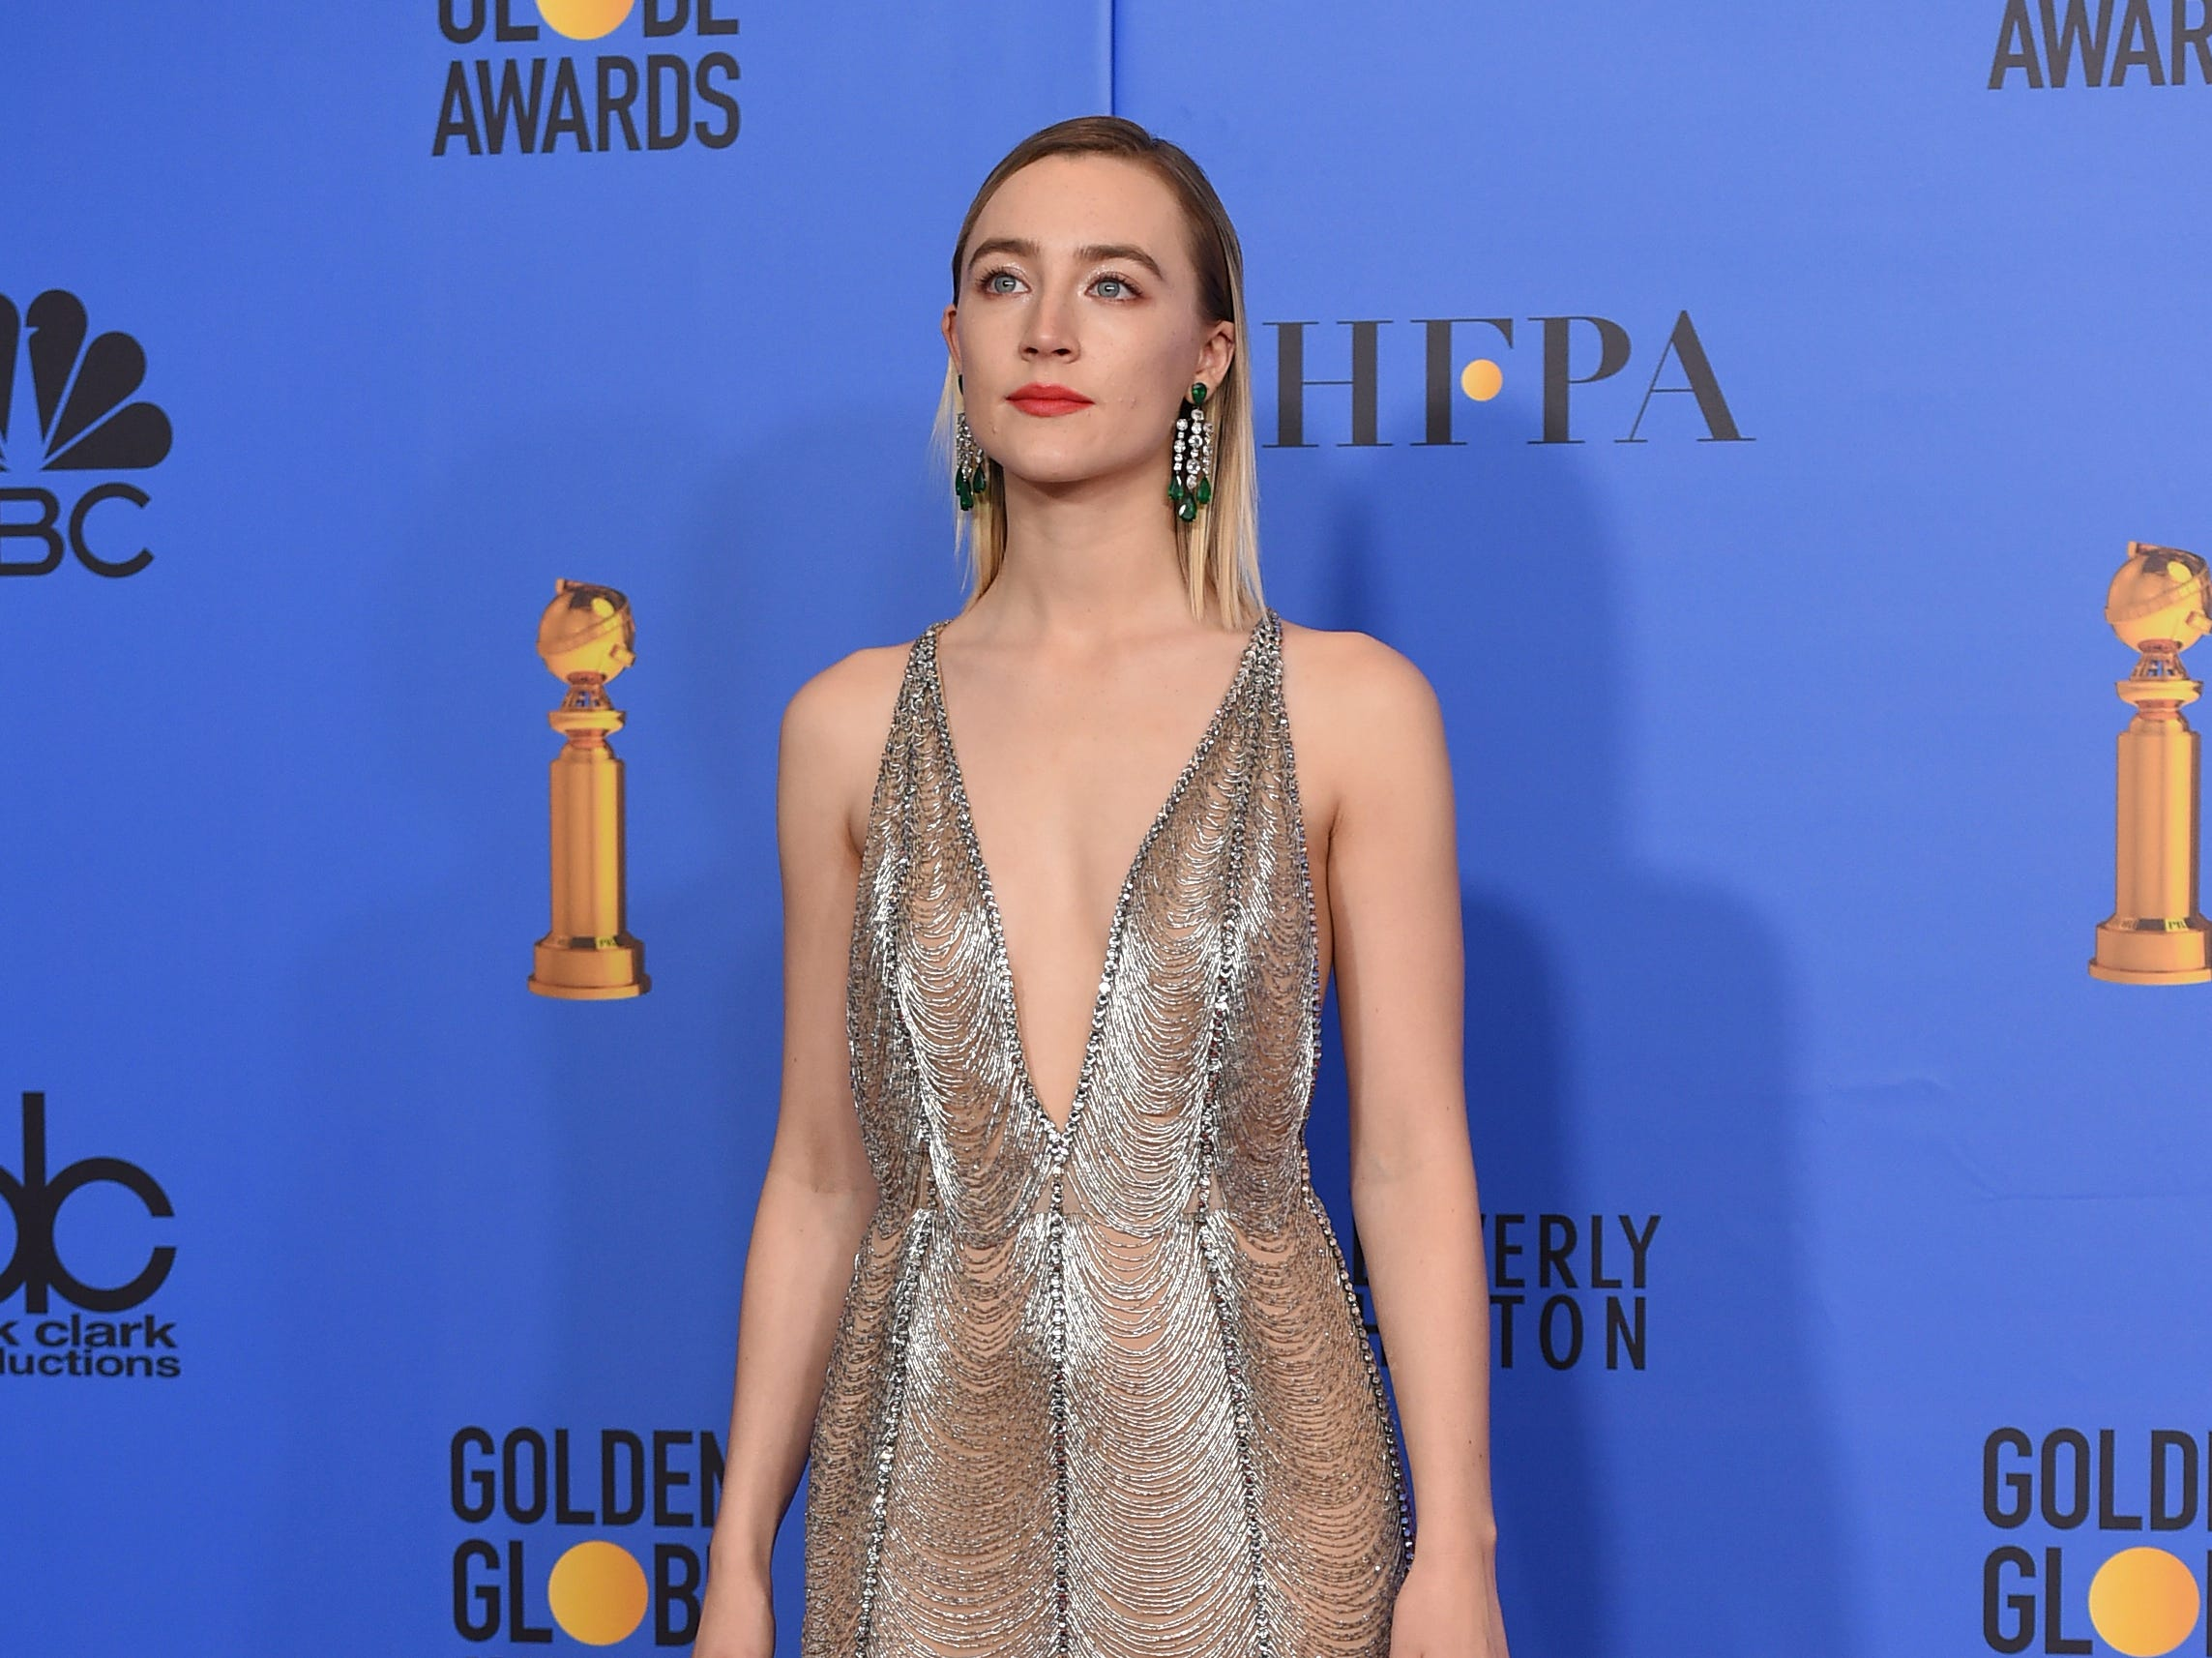 Saoirse Ronan poses in the press room at the 76th annual Golden Globe Awards at the Beverly Hilton Hotel.